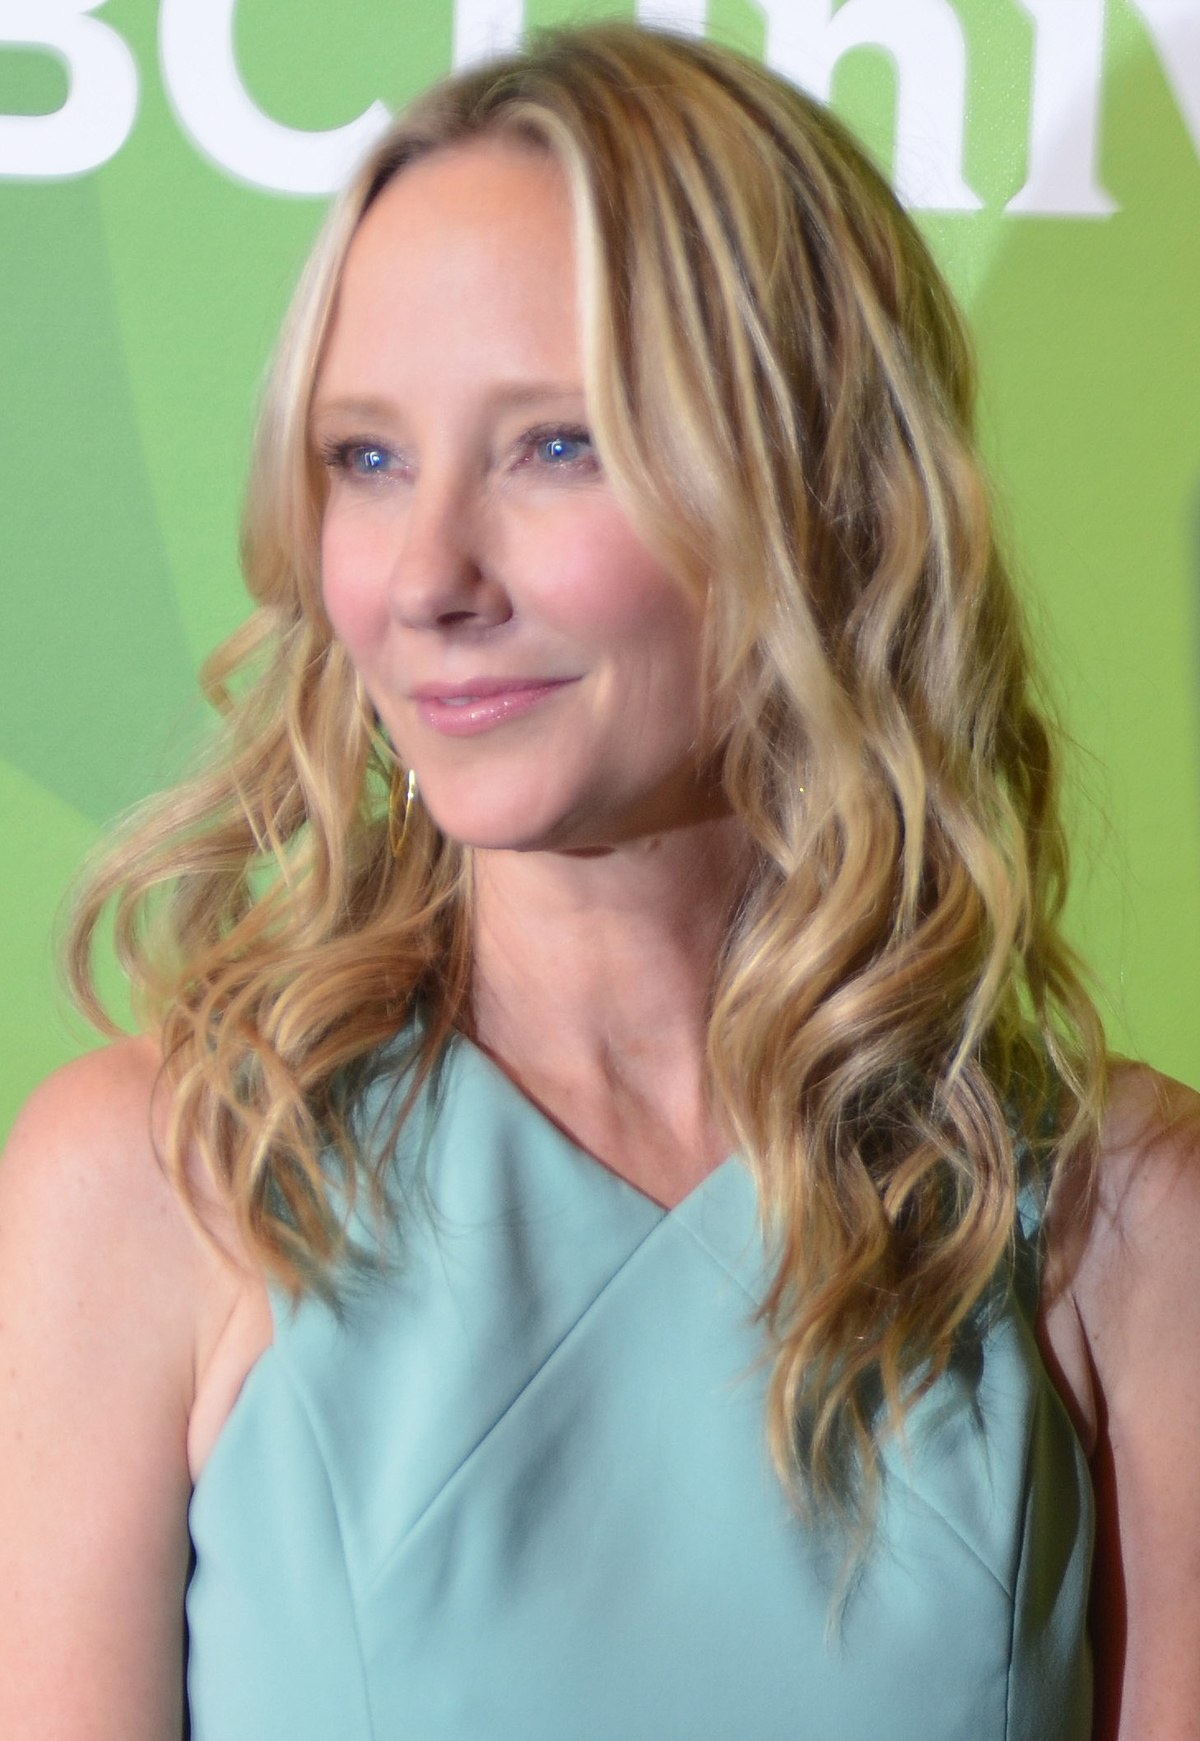 Anne Heche born May 25, 1969 (age 49)